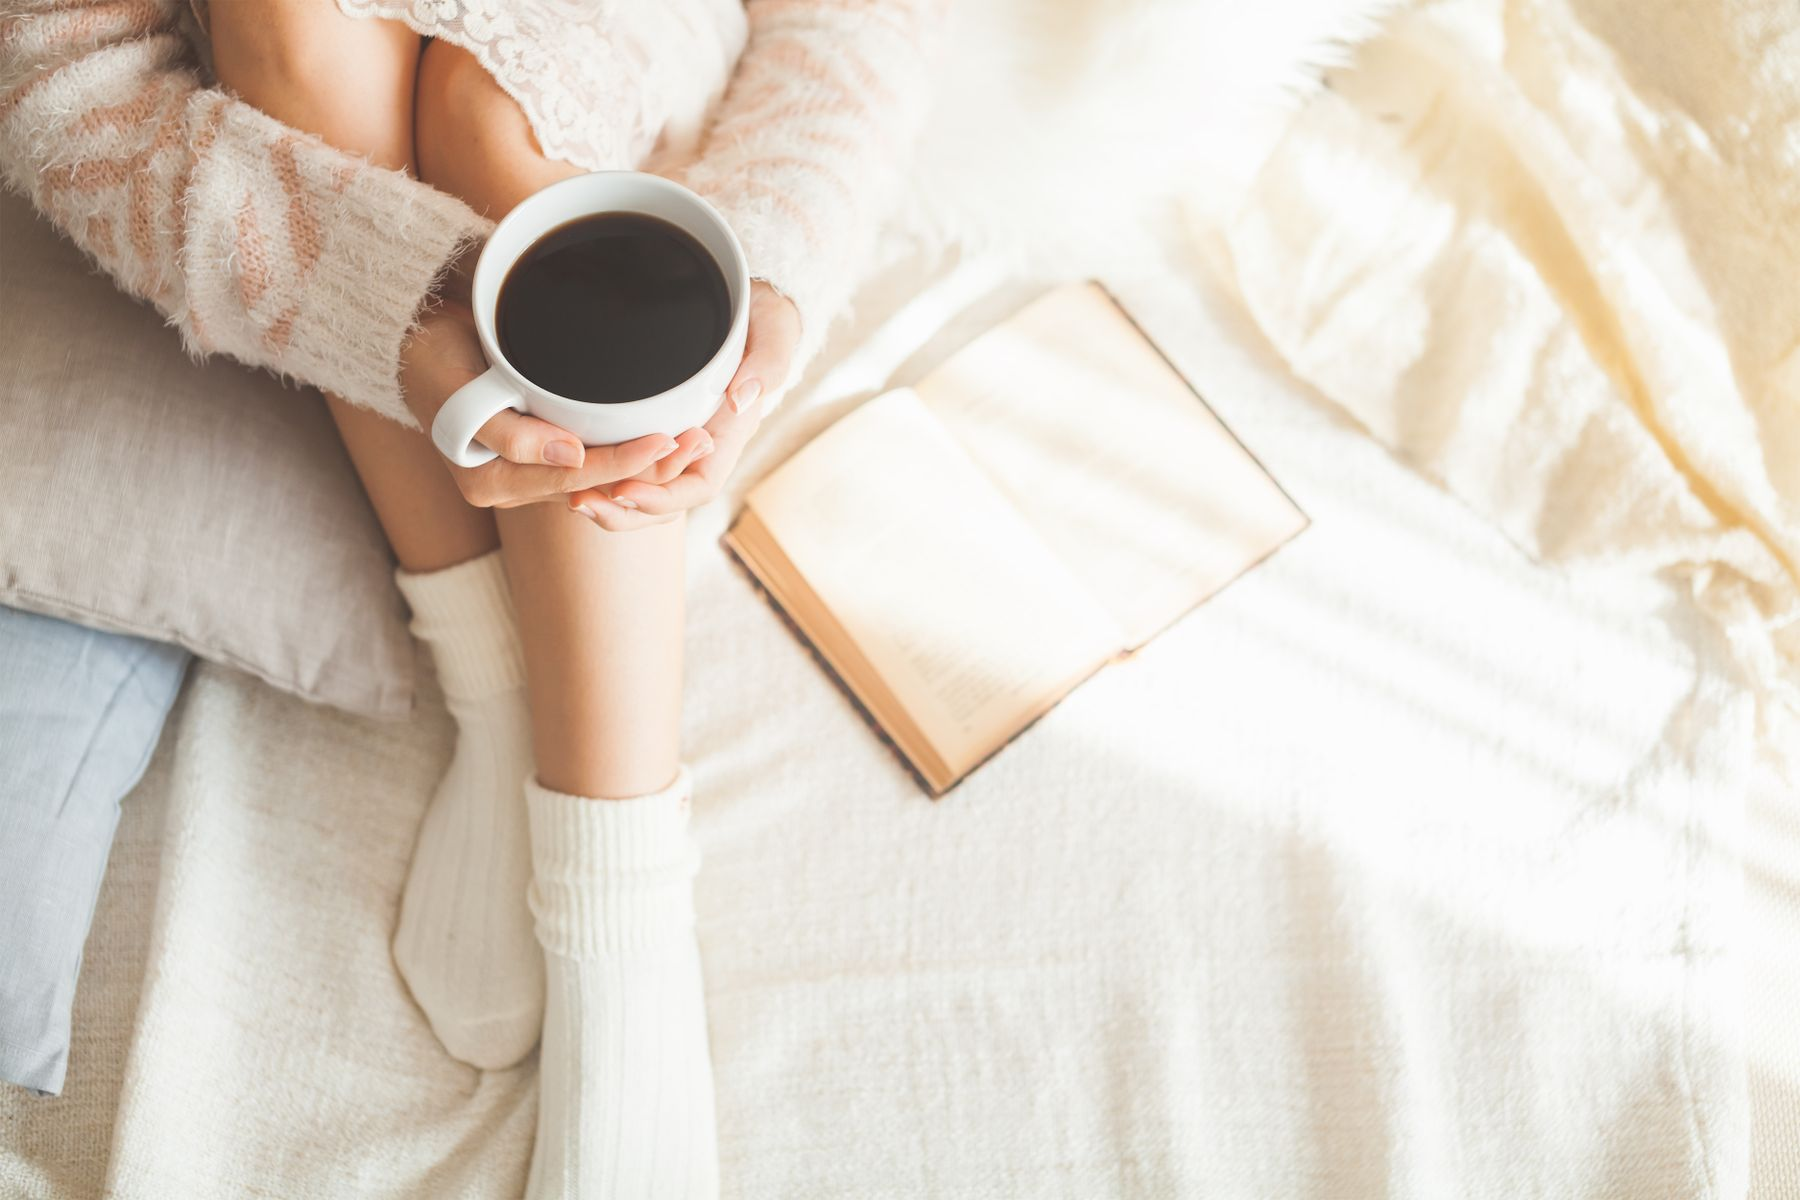 How to Remove Coffee Stains from Your Blanket shutterstock 223235353